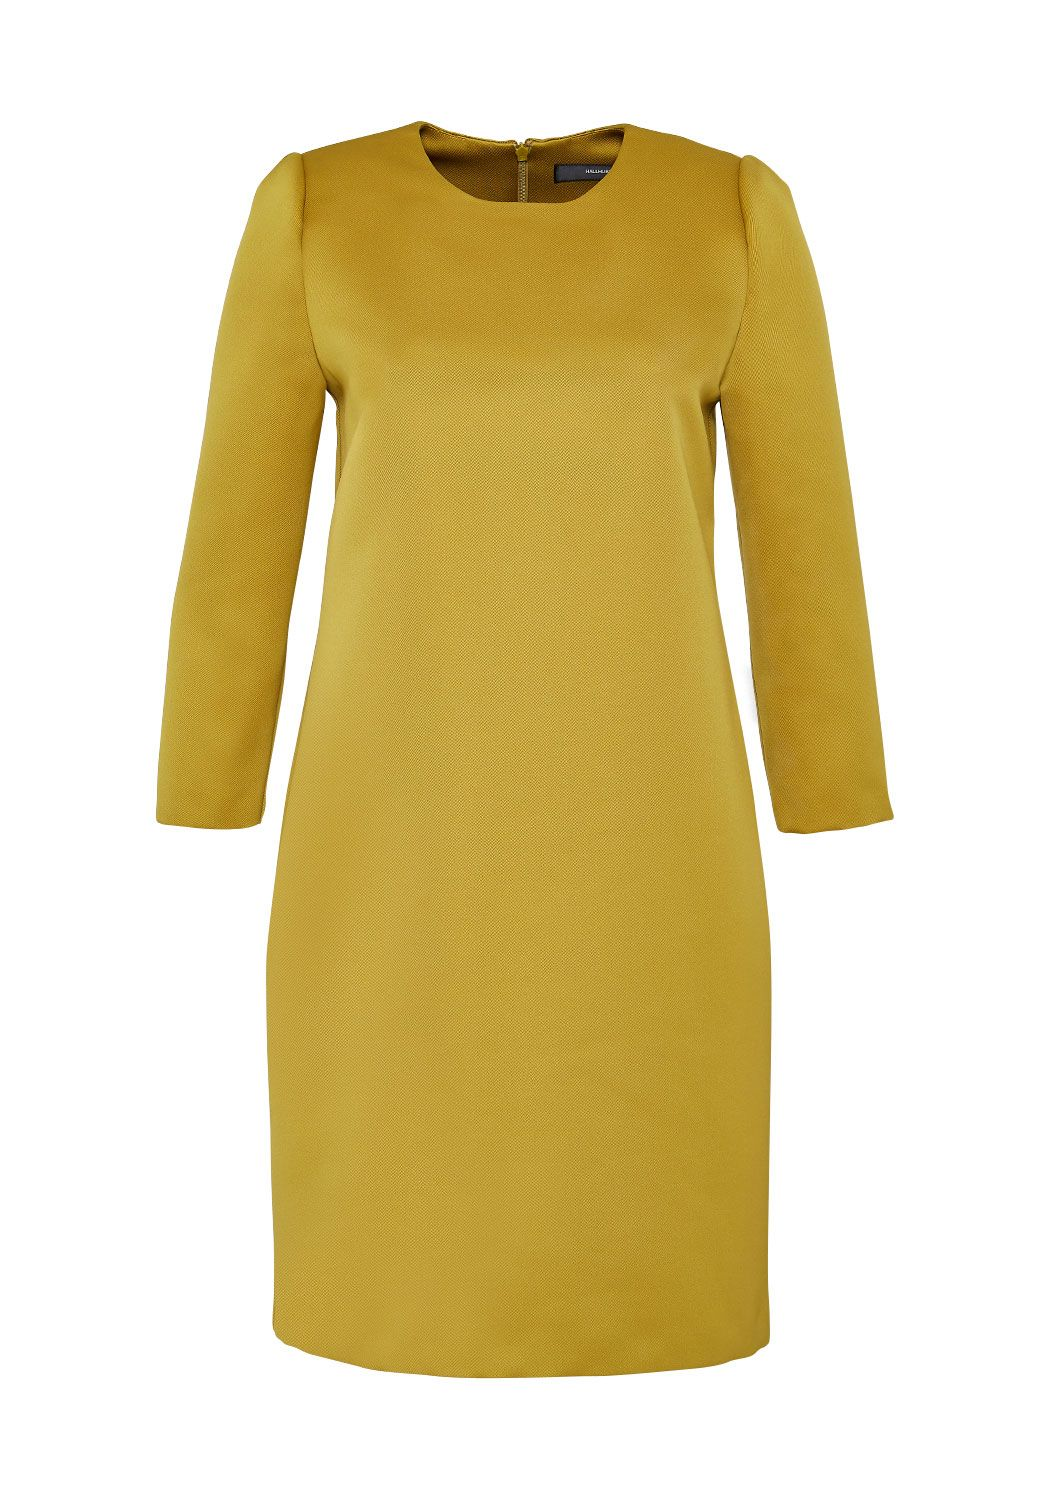 Hallhuber Hallhuber Satin dress with three-quarter sleeves, Yellow